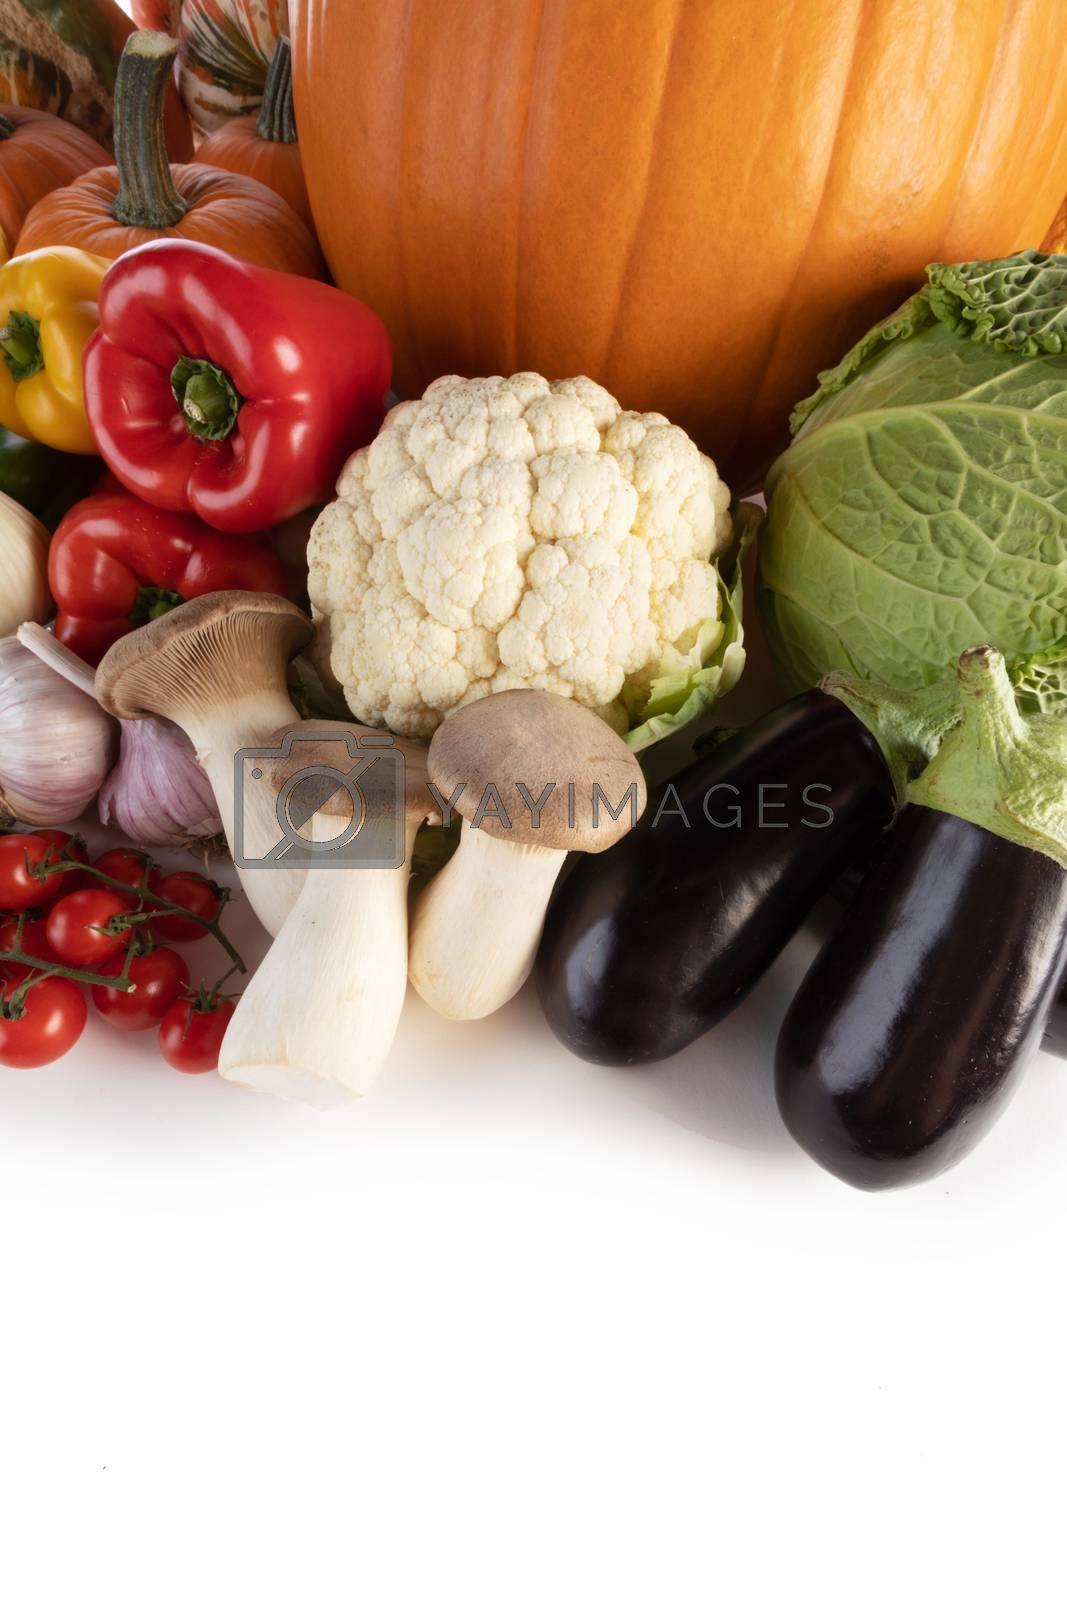 Harvest of many vegetables isolated on white background border frame with copy space for text